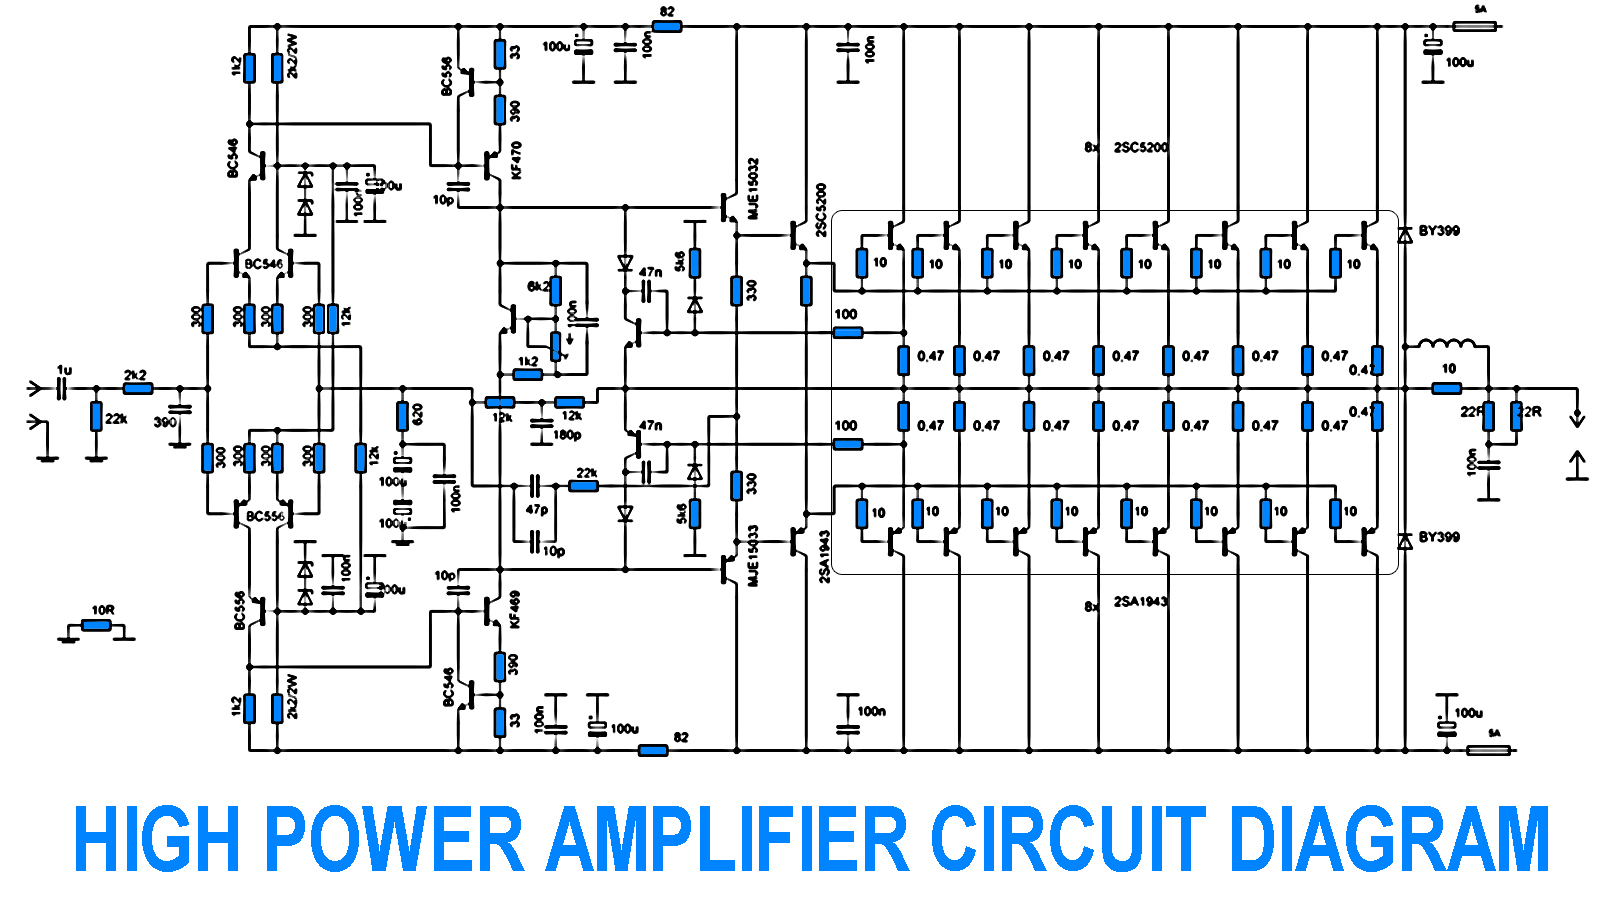 700w power amplifier with 2sc5200  2sa1943 electronic amplifier circuit diagram 386 amplifier circuit diagram 12v